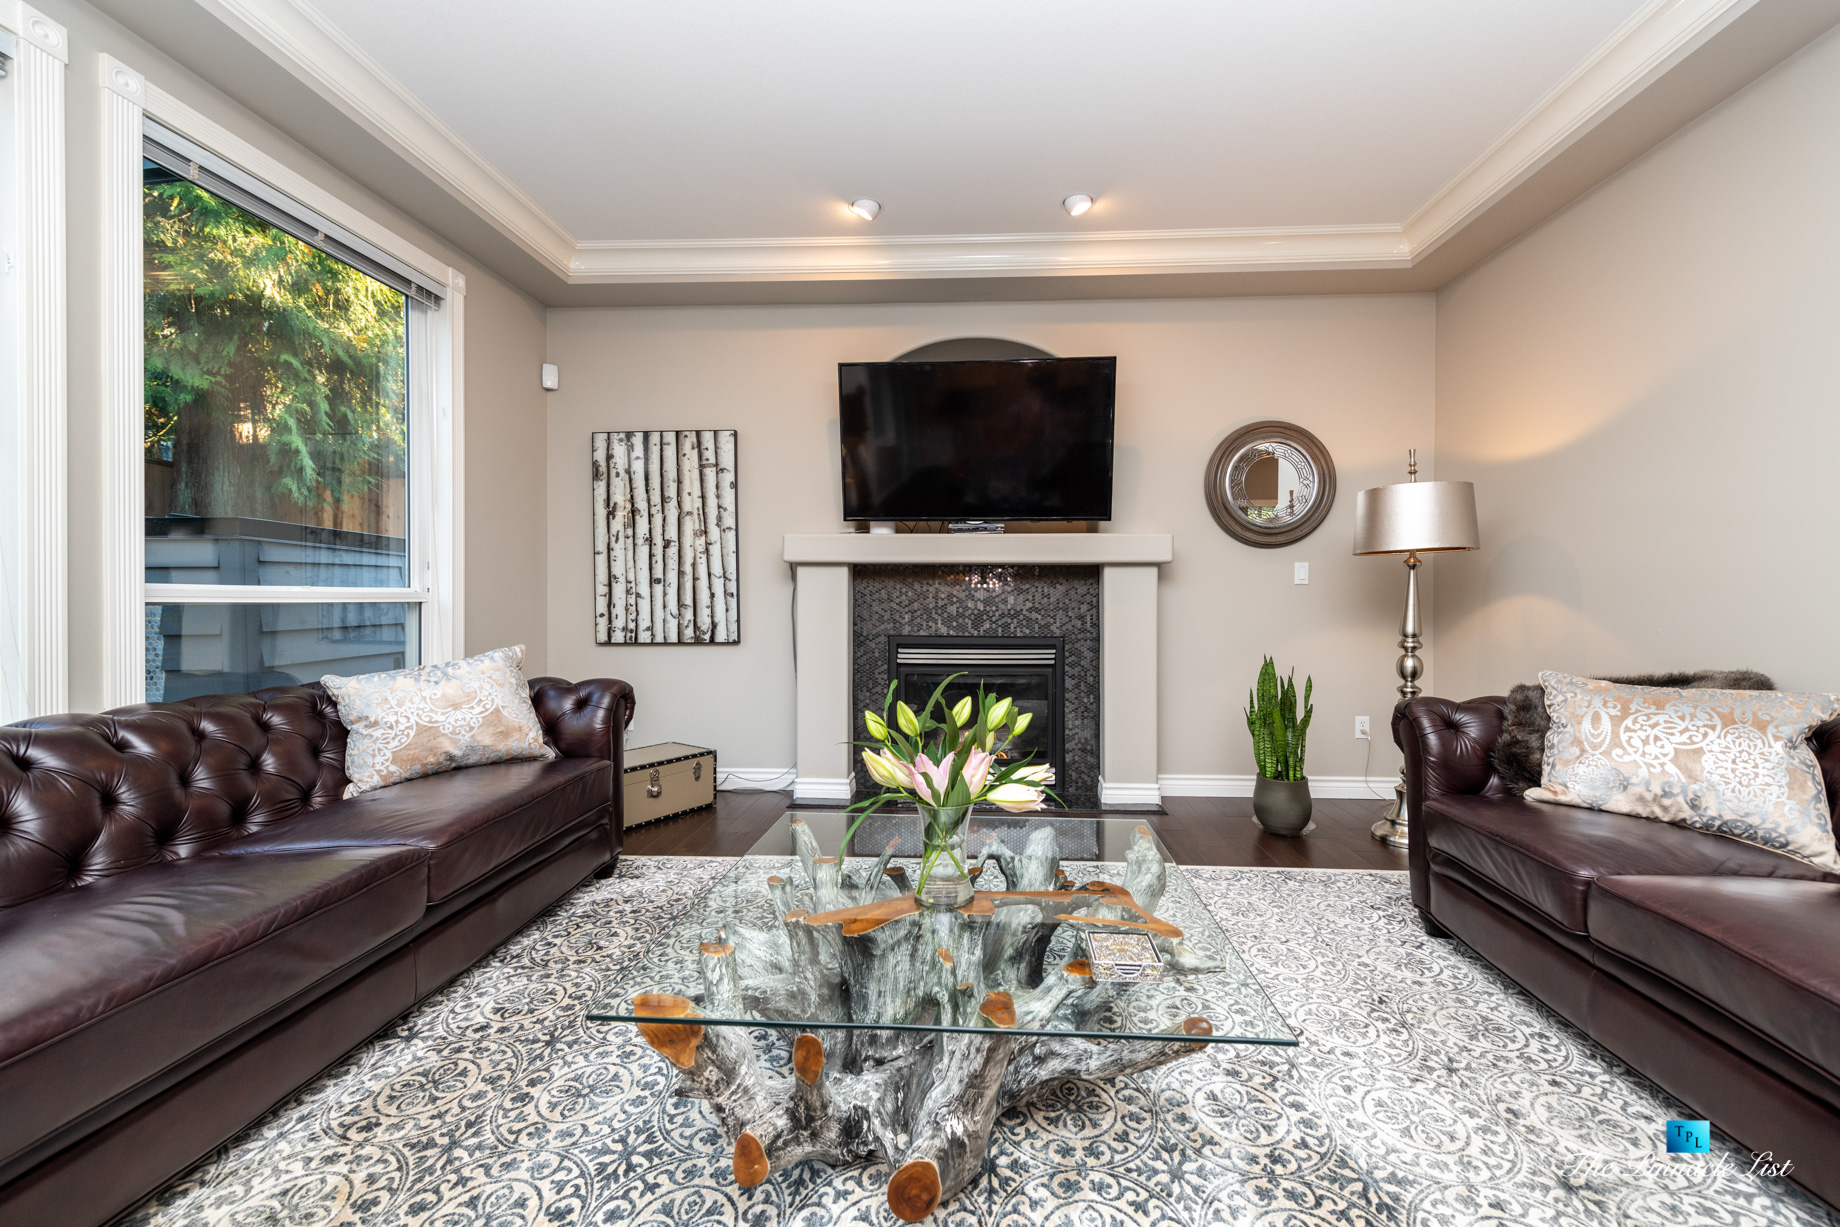 2366 Sunnyside Rd, Anmore, BC, Canada - Living Room Fireplace